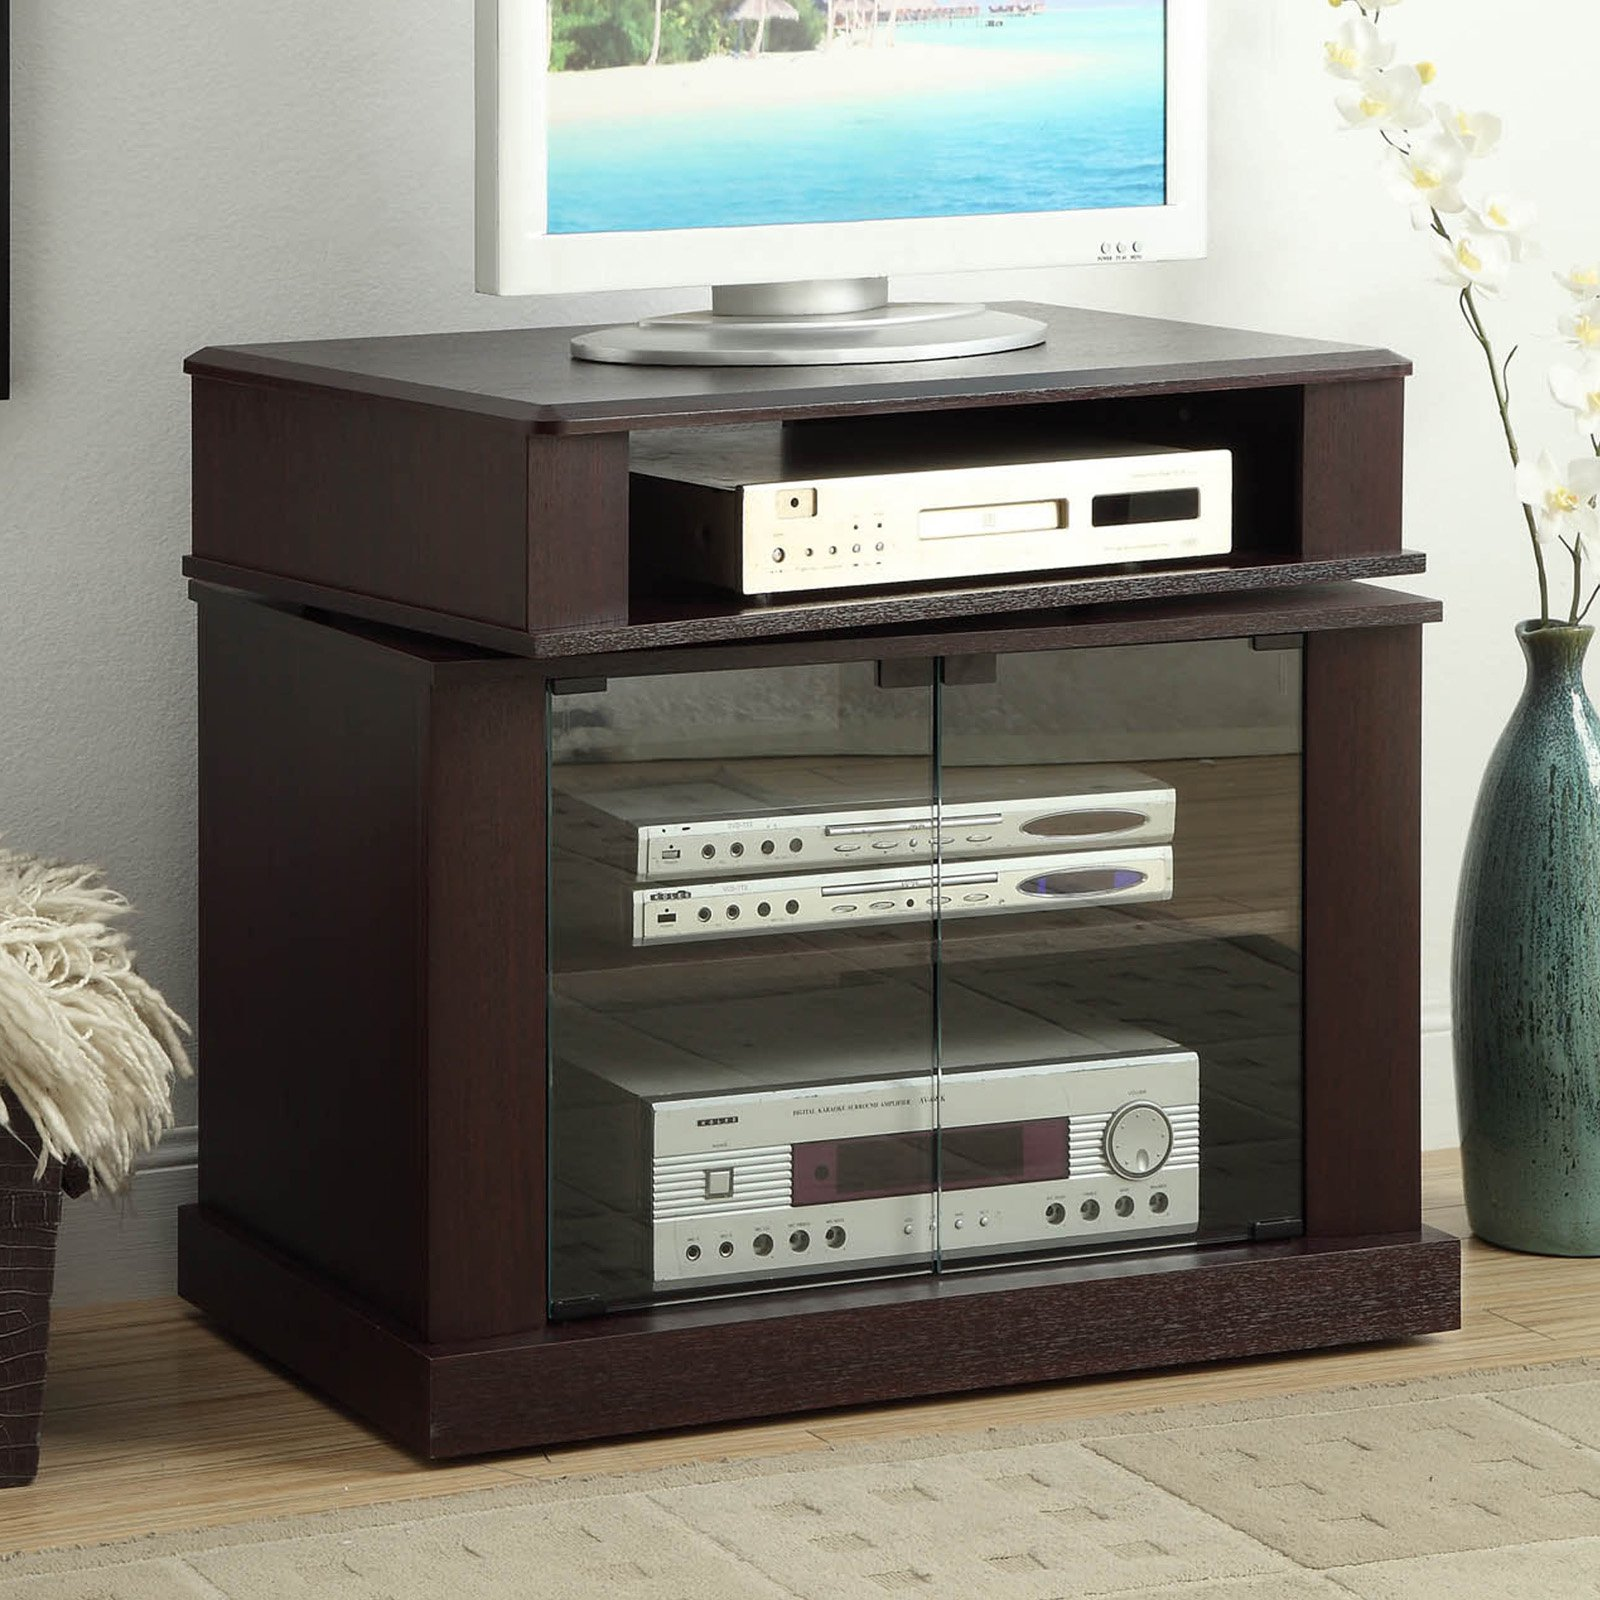 Cherry TV Stand with Swivel Top, for TVs up to 32